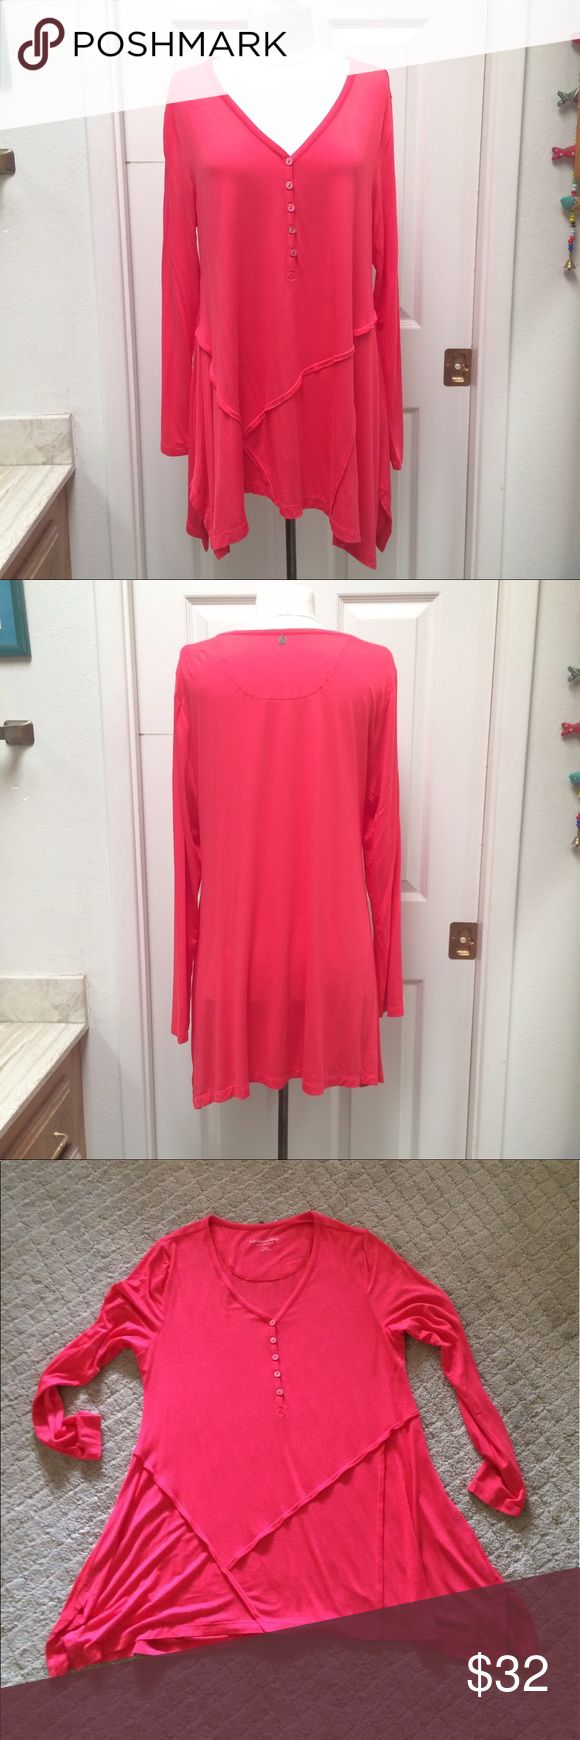 "Soft Surroundings Henley Tunic NWOT Beautiful coral Tunic. Very soft and flowing. Perfect with leggings or skinny jeans. Longer at sides with small side slits. Decorative stitching on bottom front. 20"" pit to pit and 30"" center length. 95% viscose, 5% spandex. NWOT Soft Surroundings Tops Tunics"